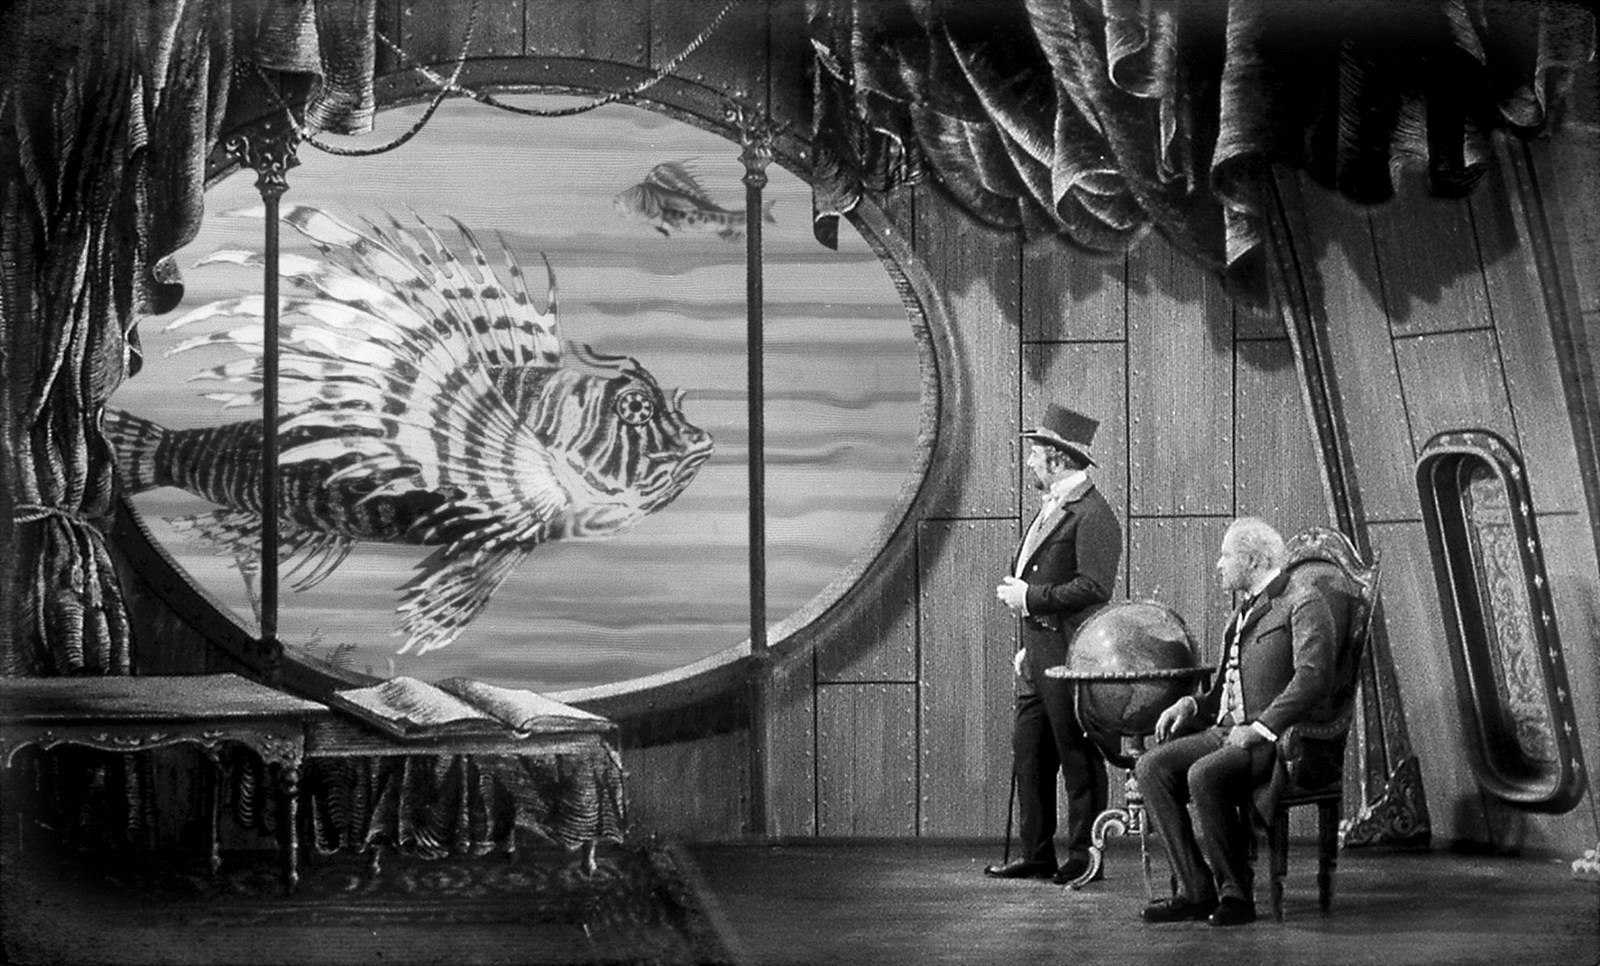 Submarine journey with Count Artigas (Miroslav Holub) and Professor Roch (Arnost Navratil) in The Fabulous World of Jules Verne (1958)